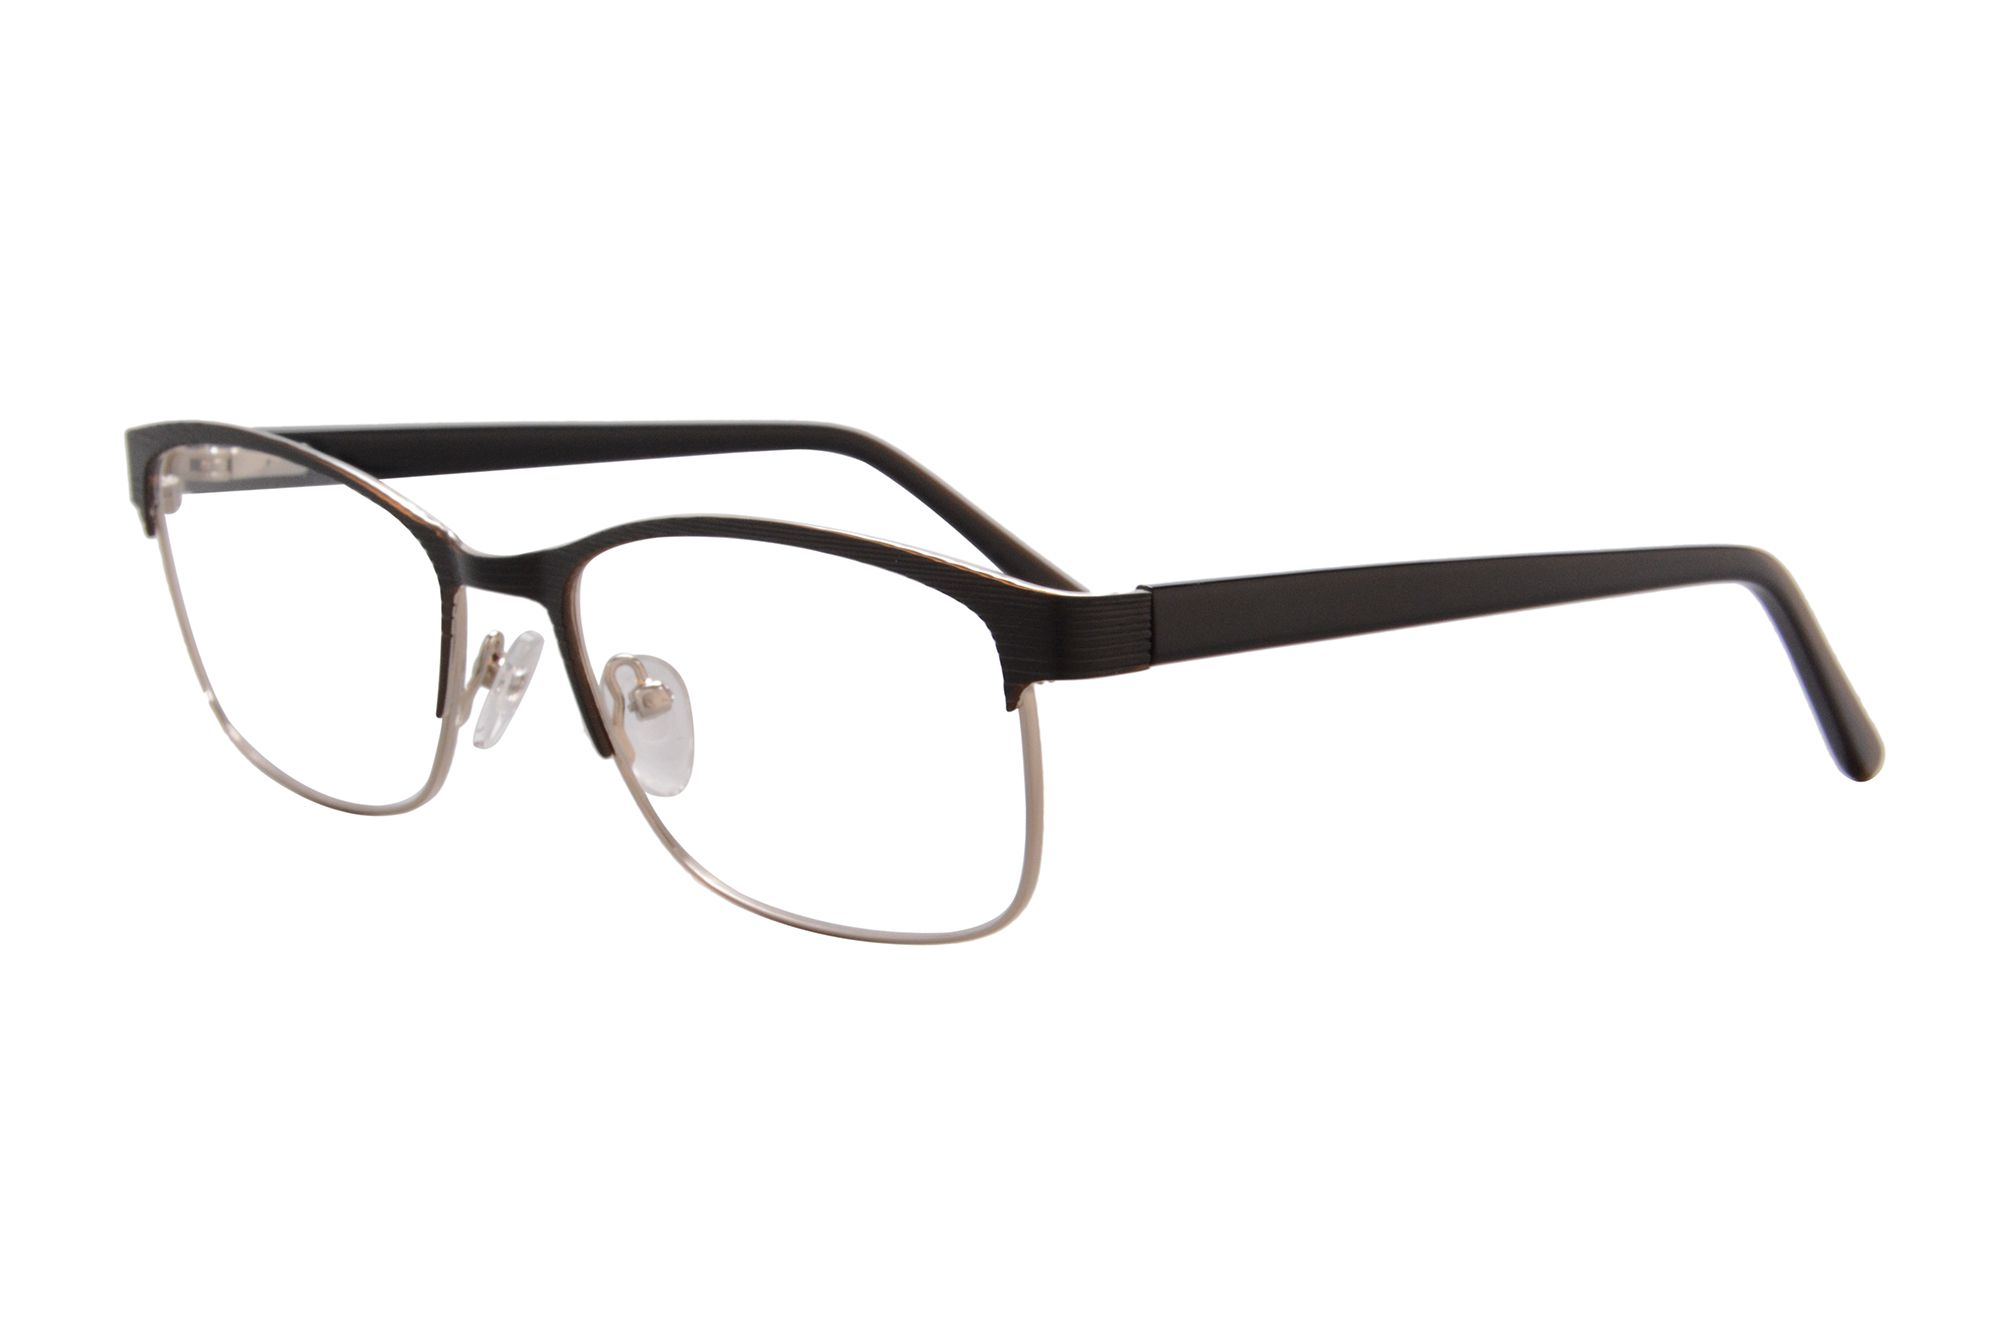 2339ad4788 SHINU Anti Blue Light Myopia Glasses with Spring Hinge Frame for Women and  Men-6616